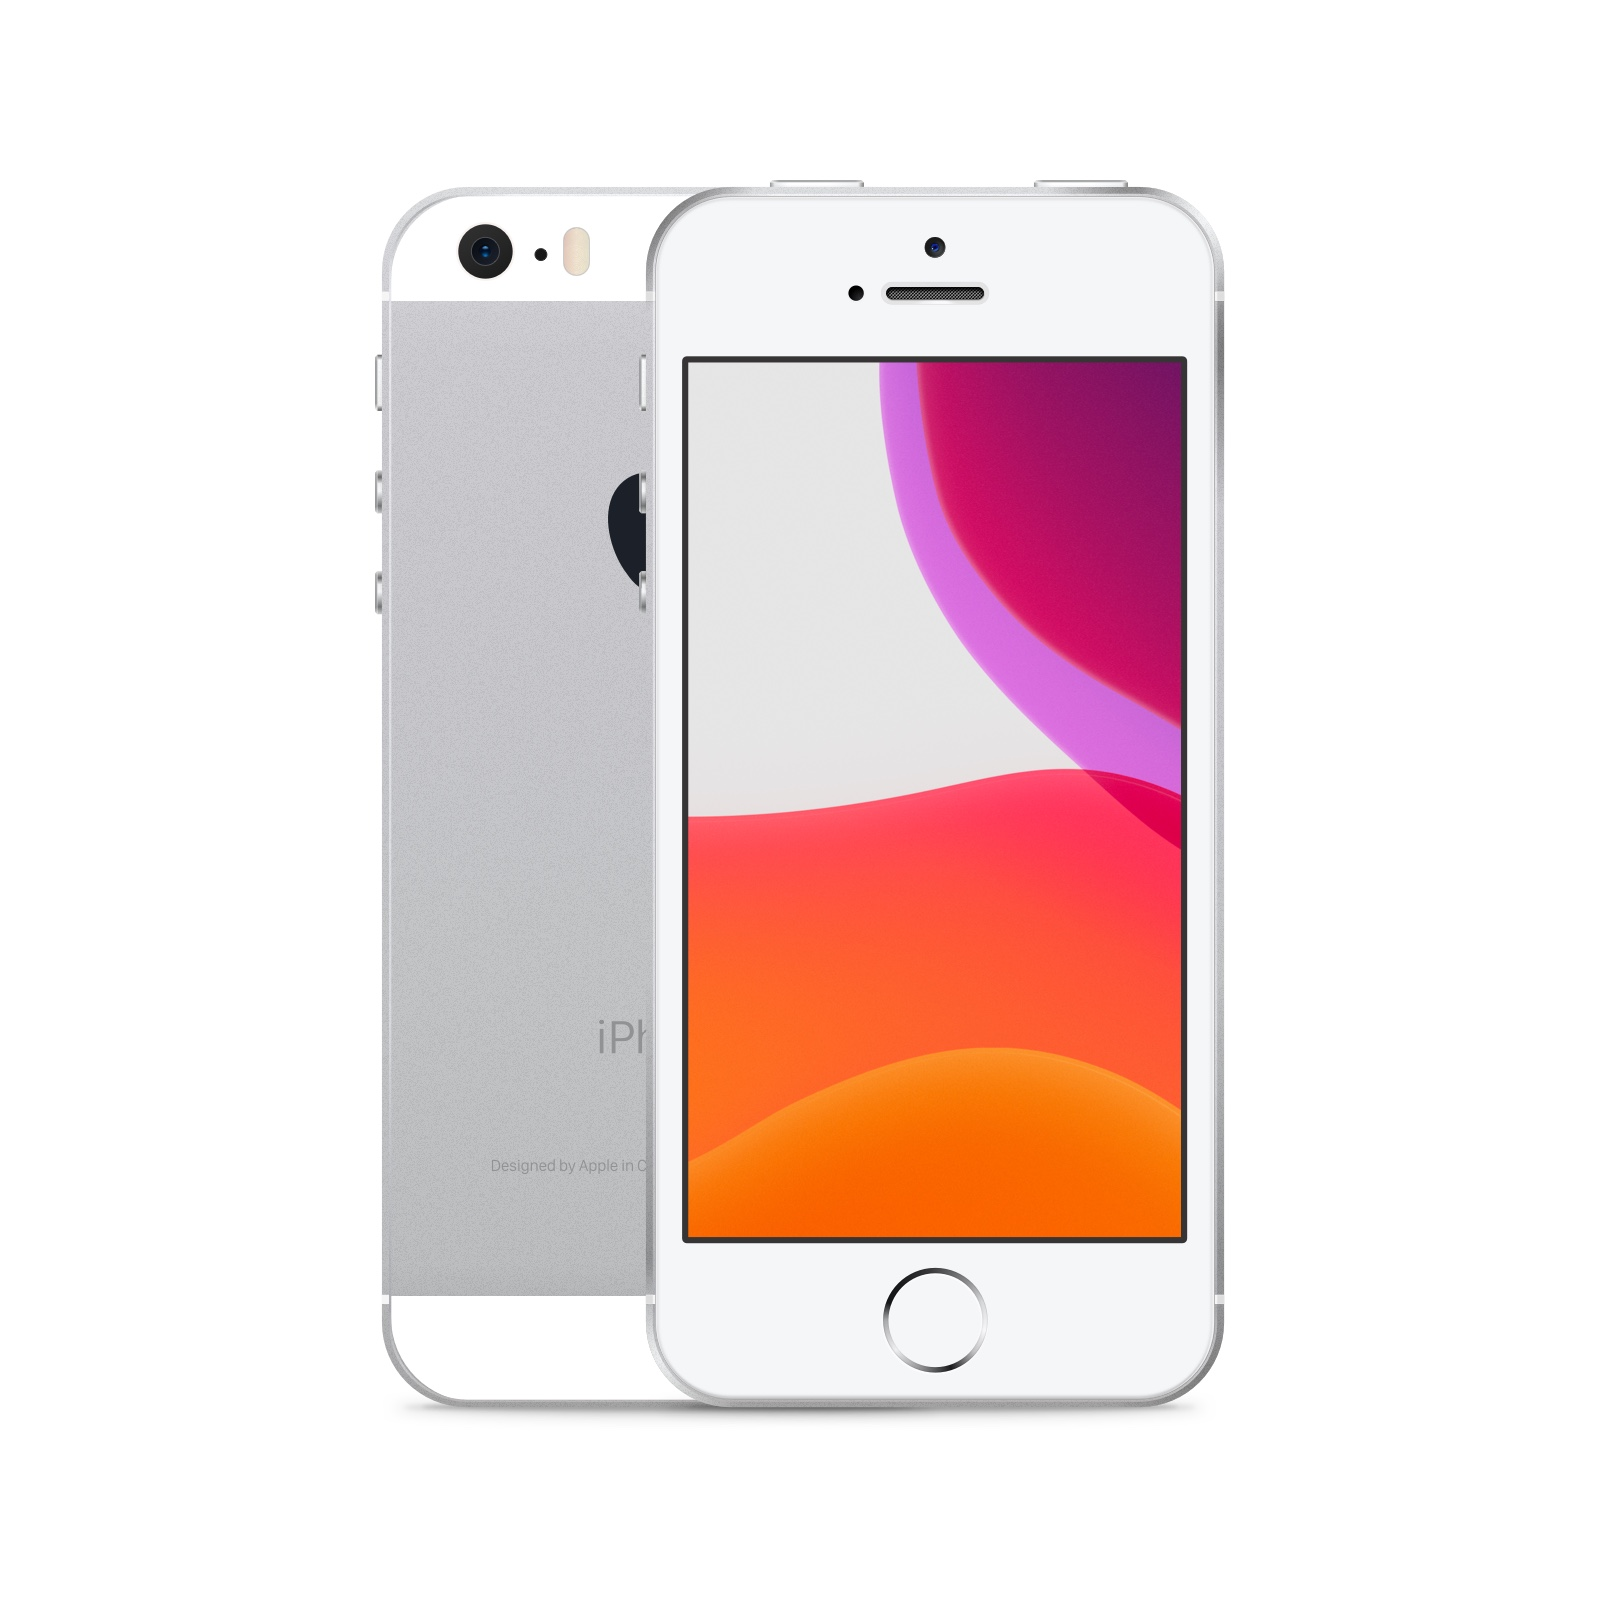 iPhone 5s undefinedGB Silver